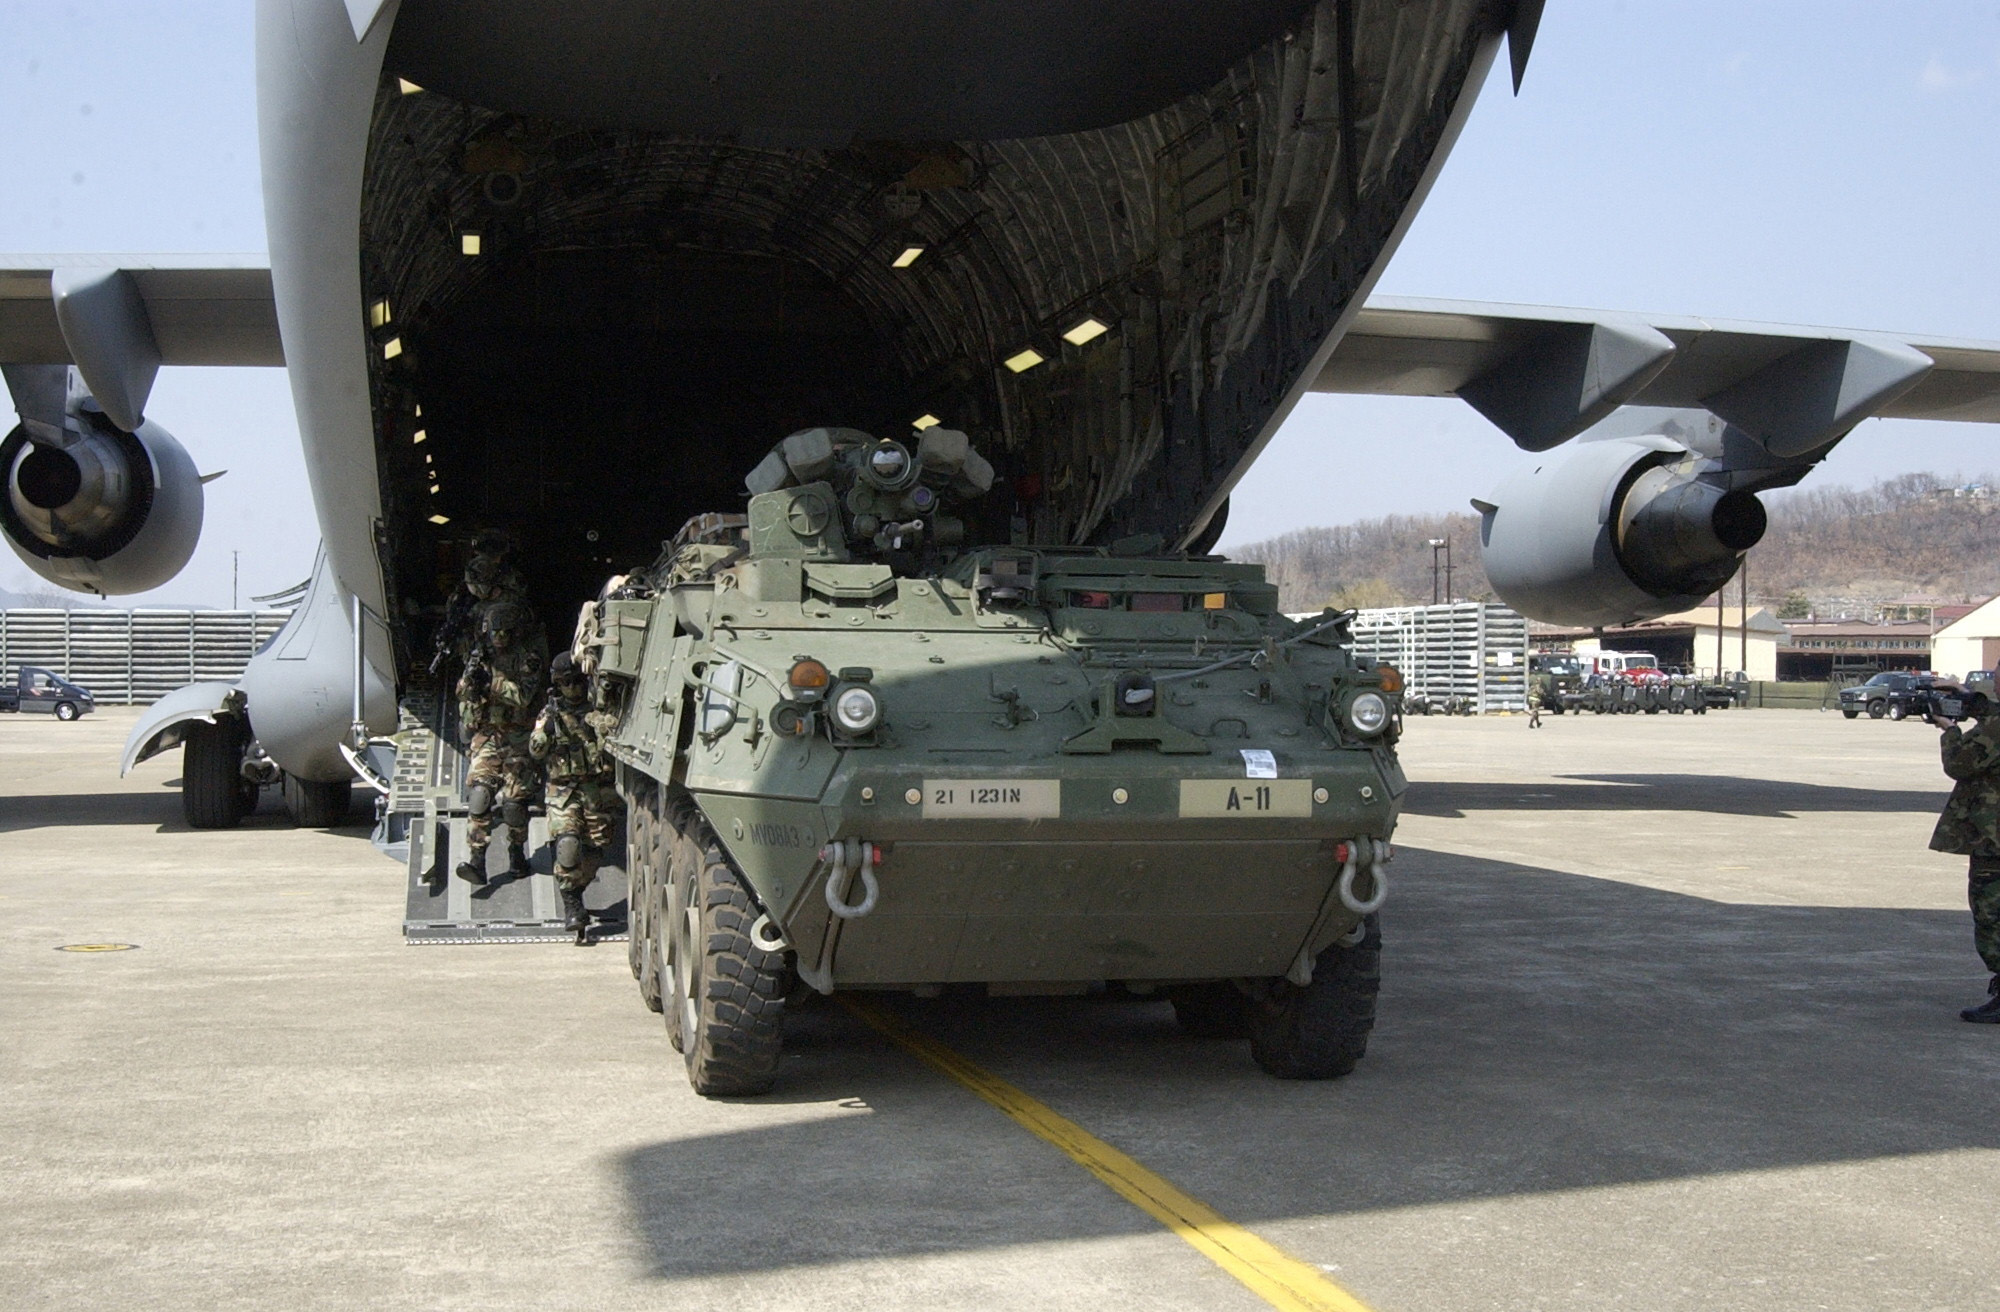 File:Stryker at Daegu Air Base.jpg - Wikimedia Commons